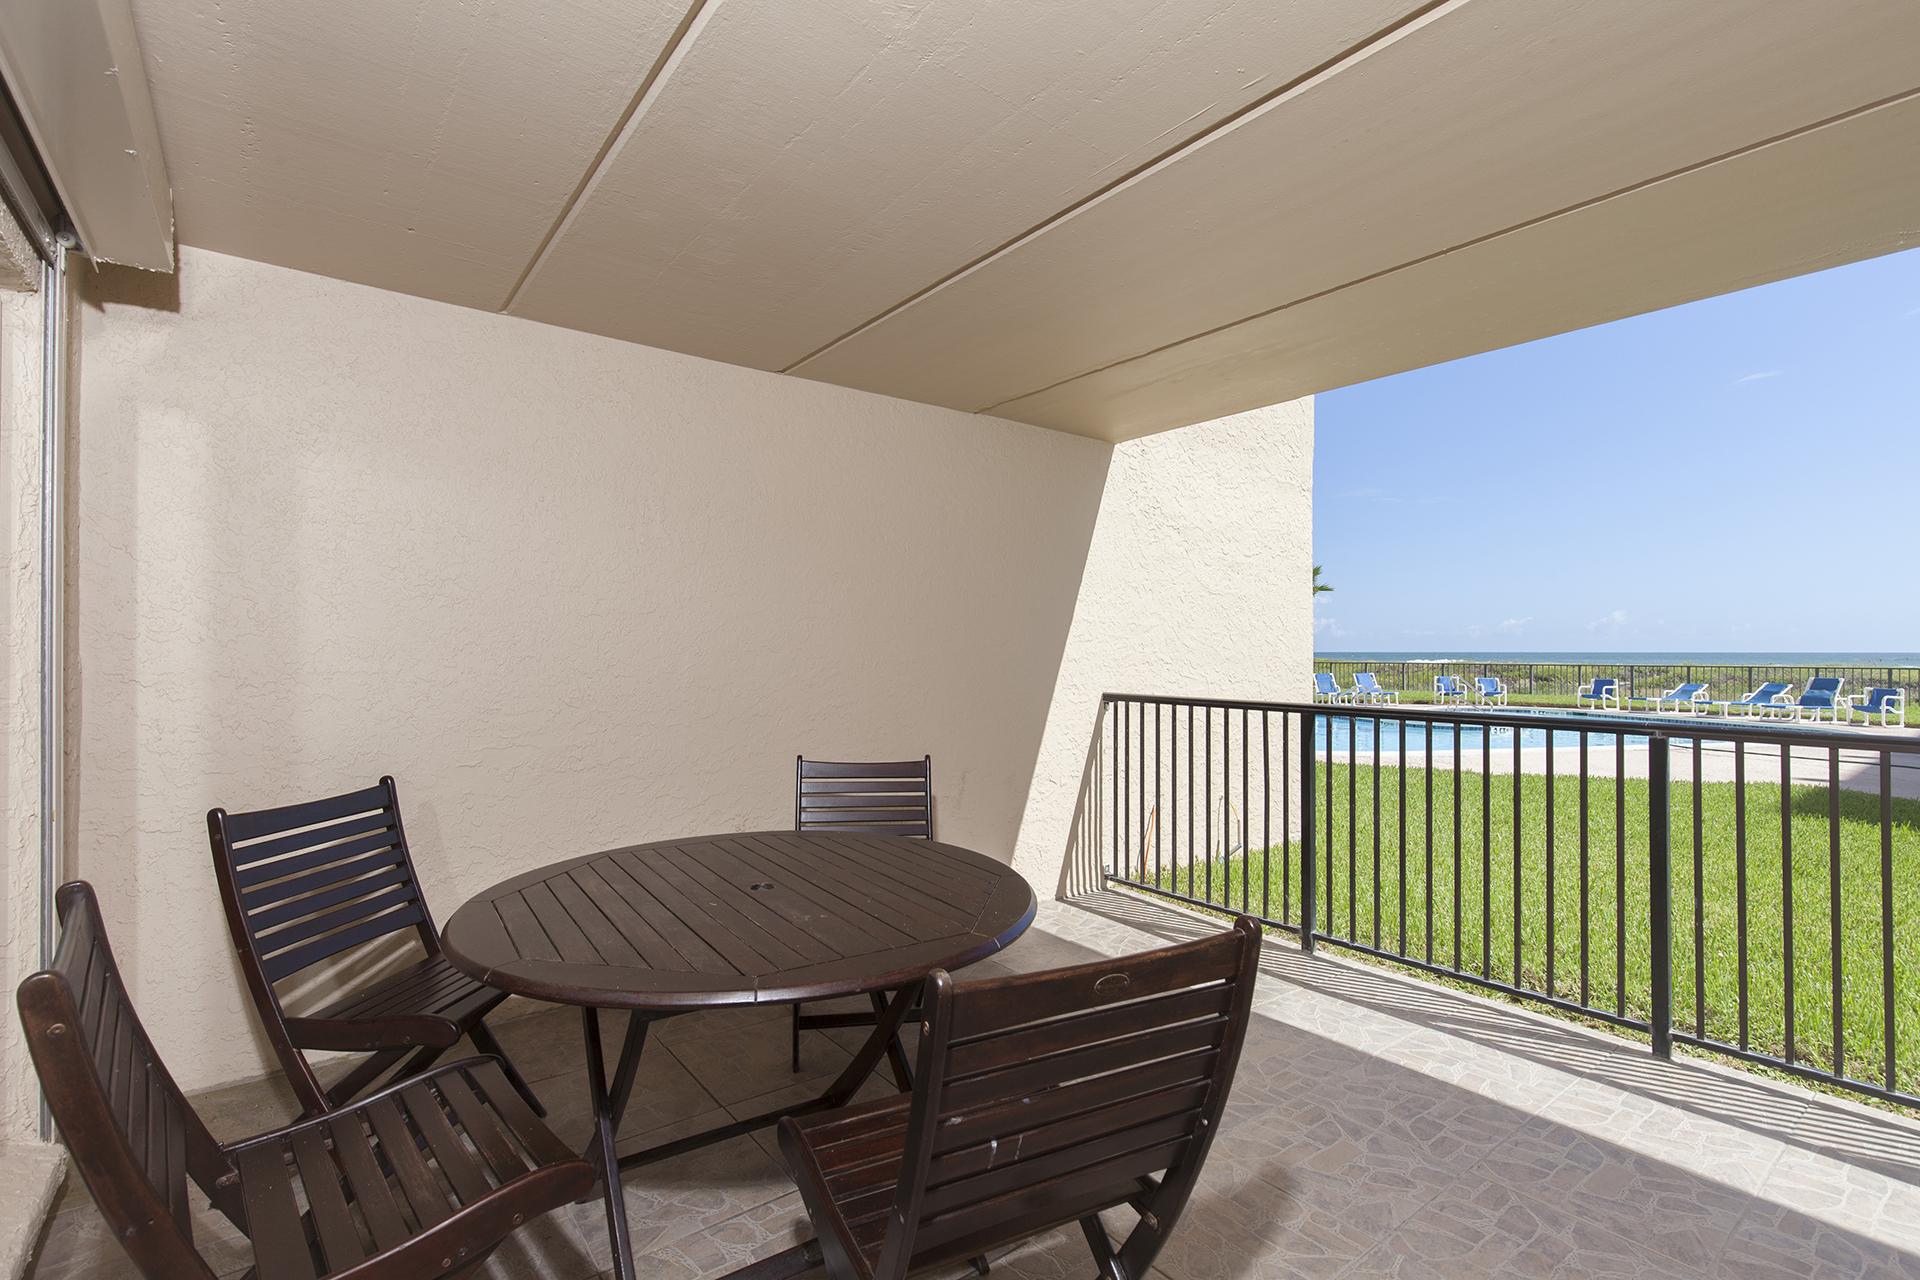 Spacious balcony with views to the beach.